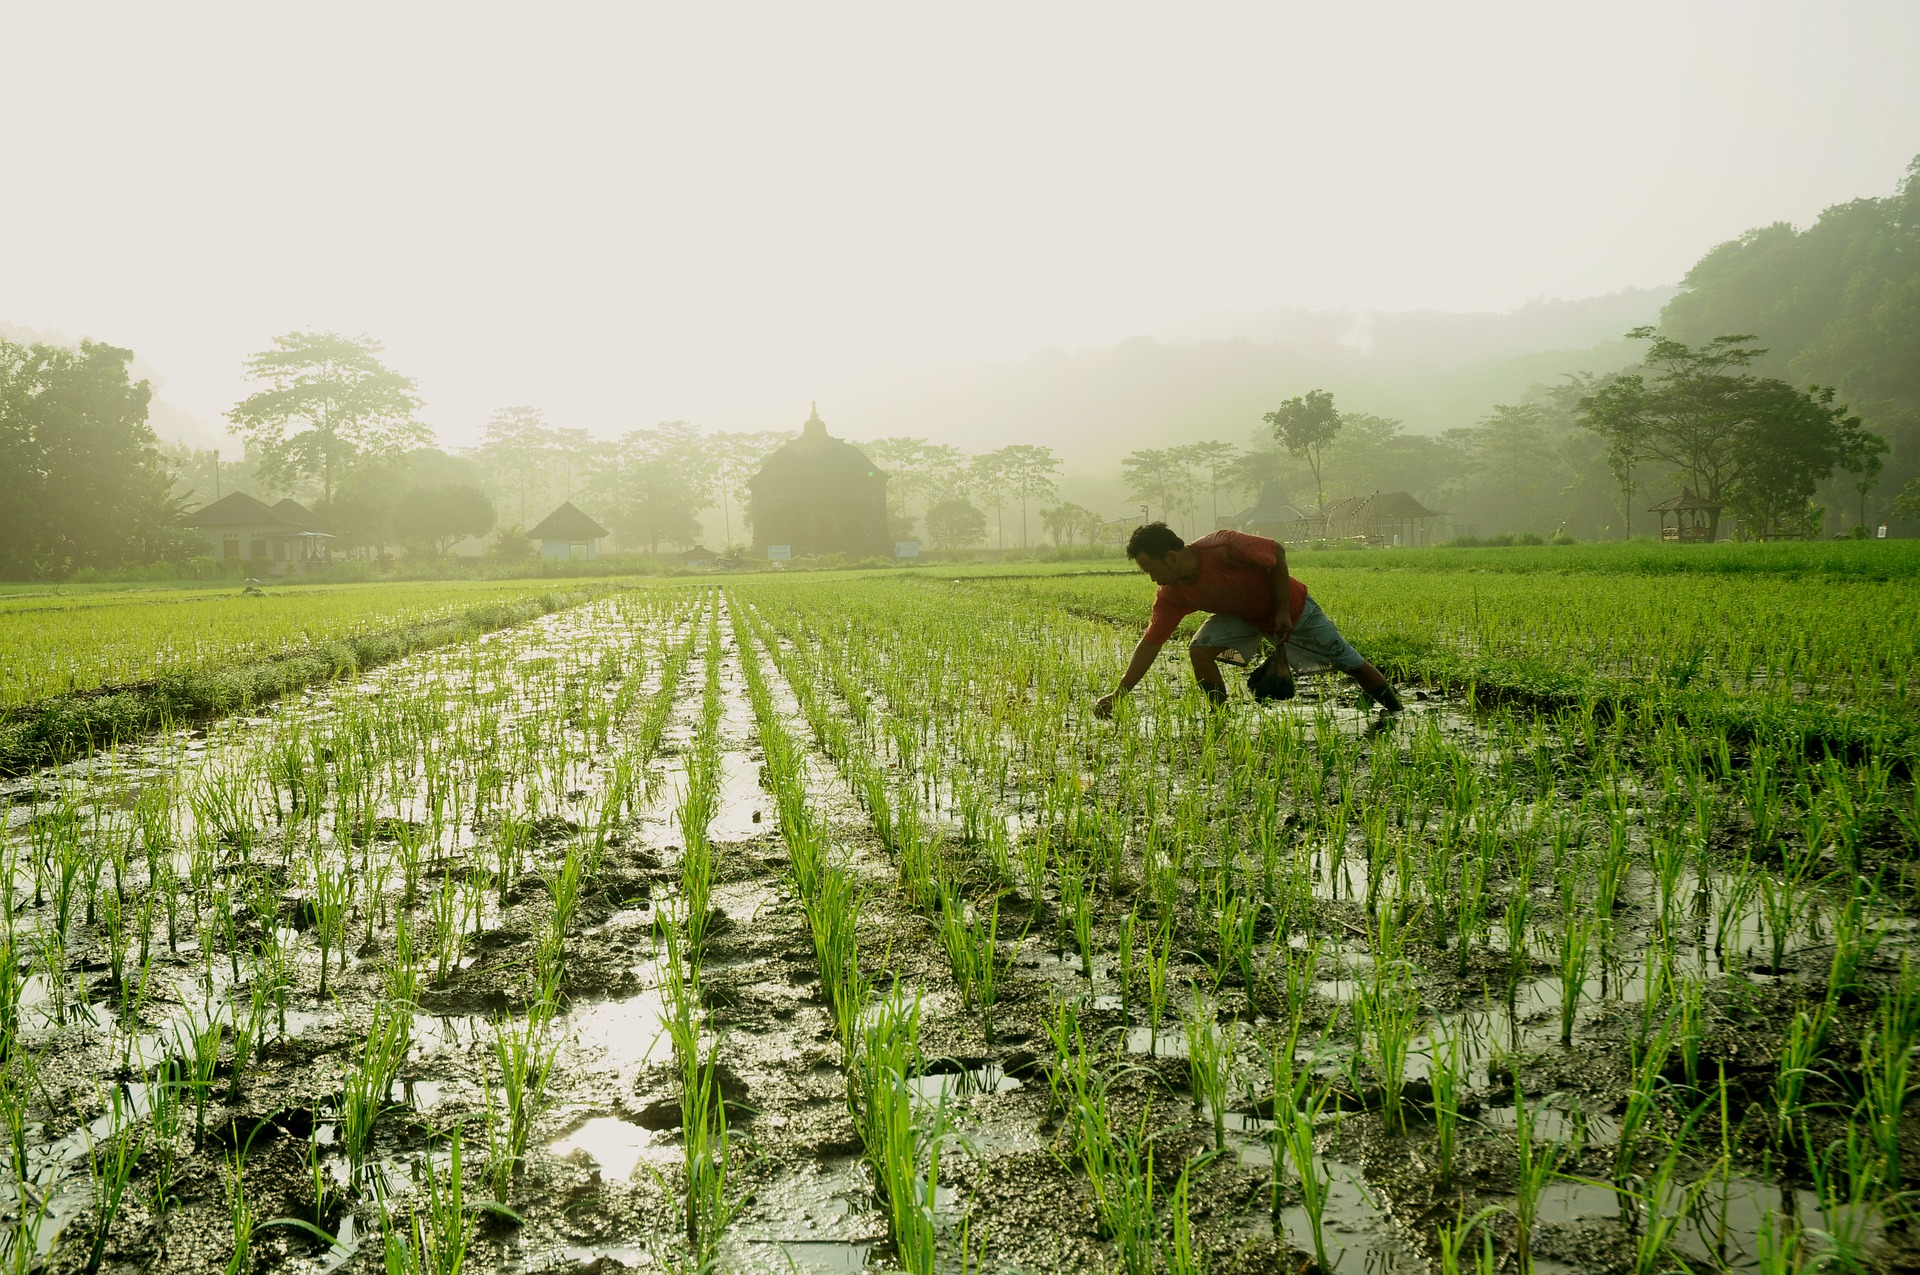 planting rice (photo courtesy of pixabay)